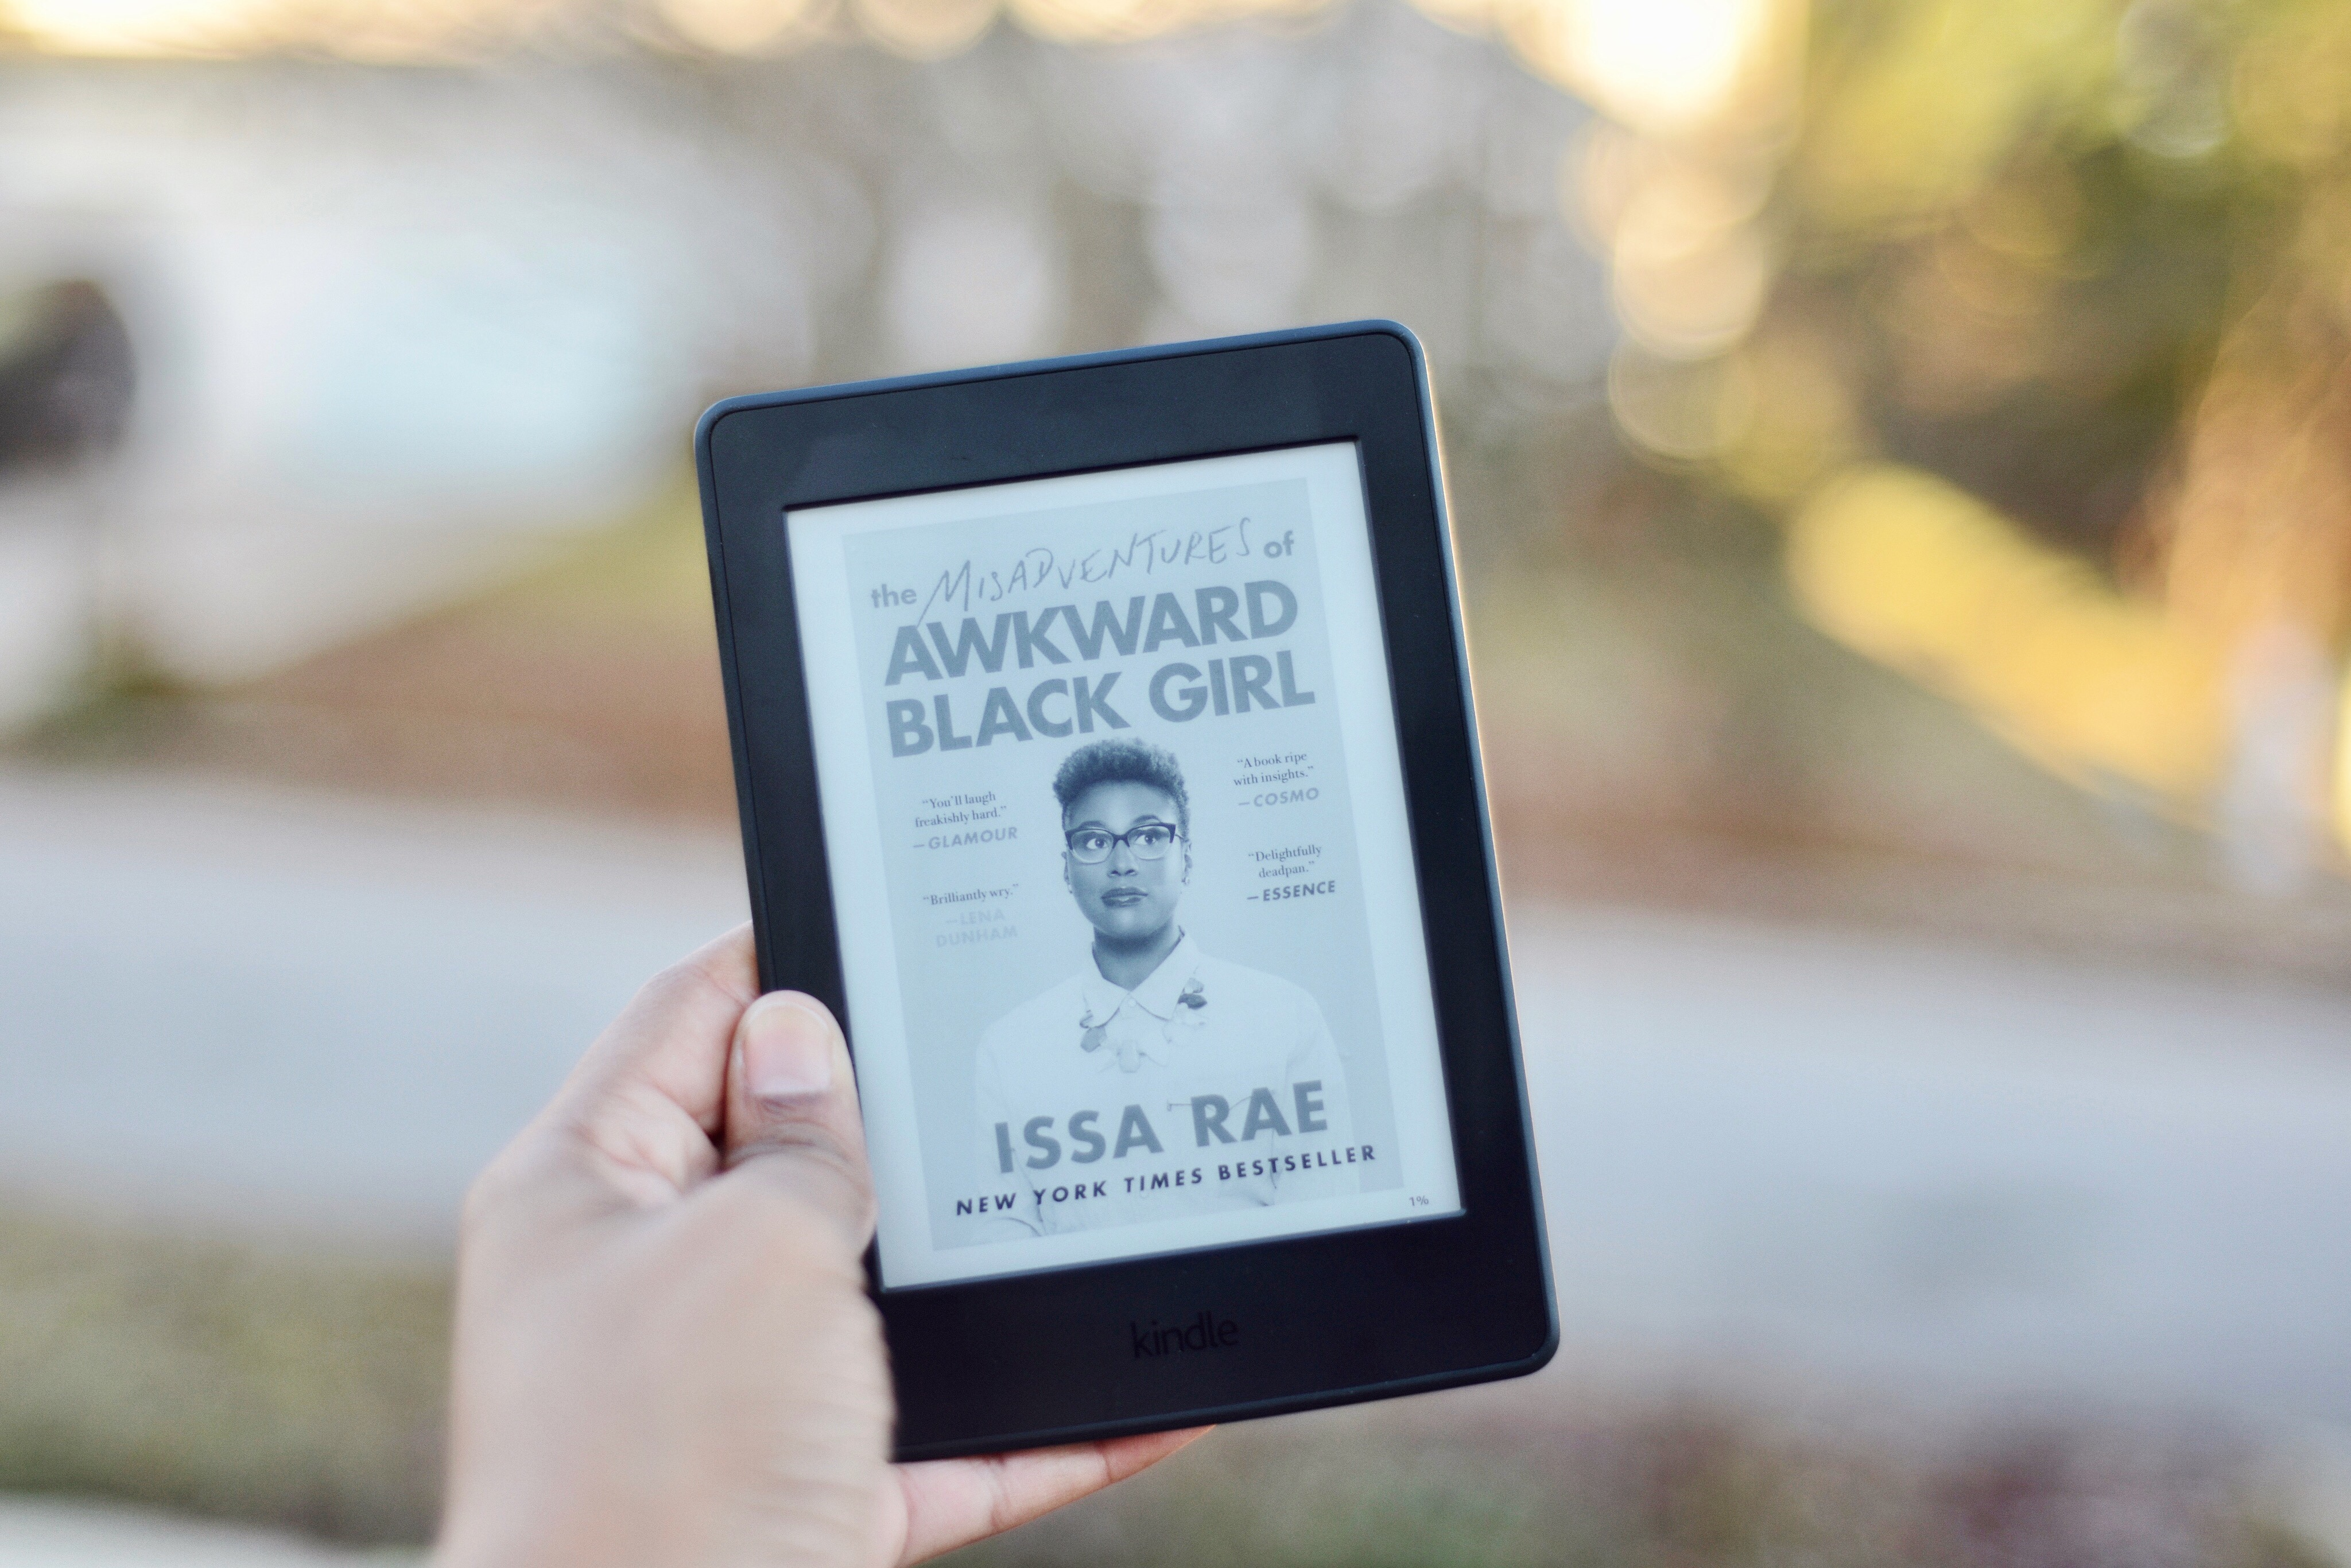 Review The Misadventures Of Awkward Black Girl By Issa